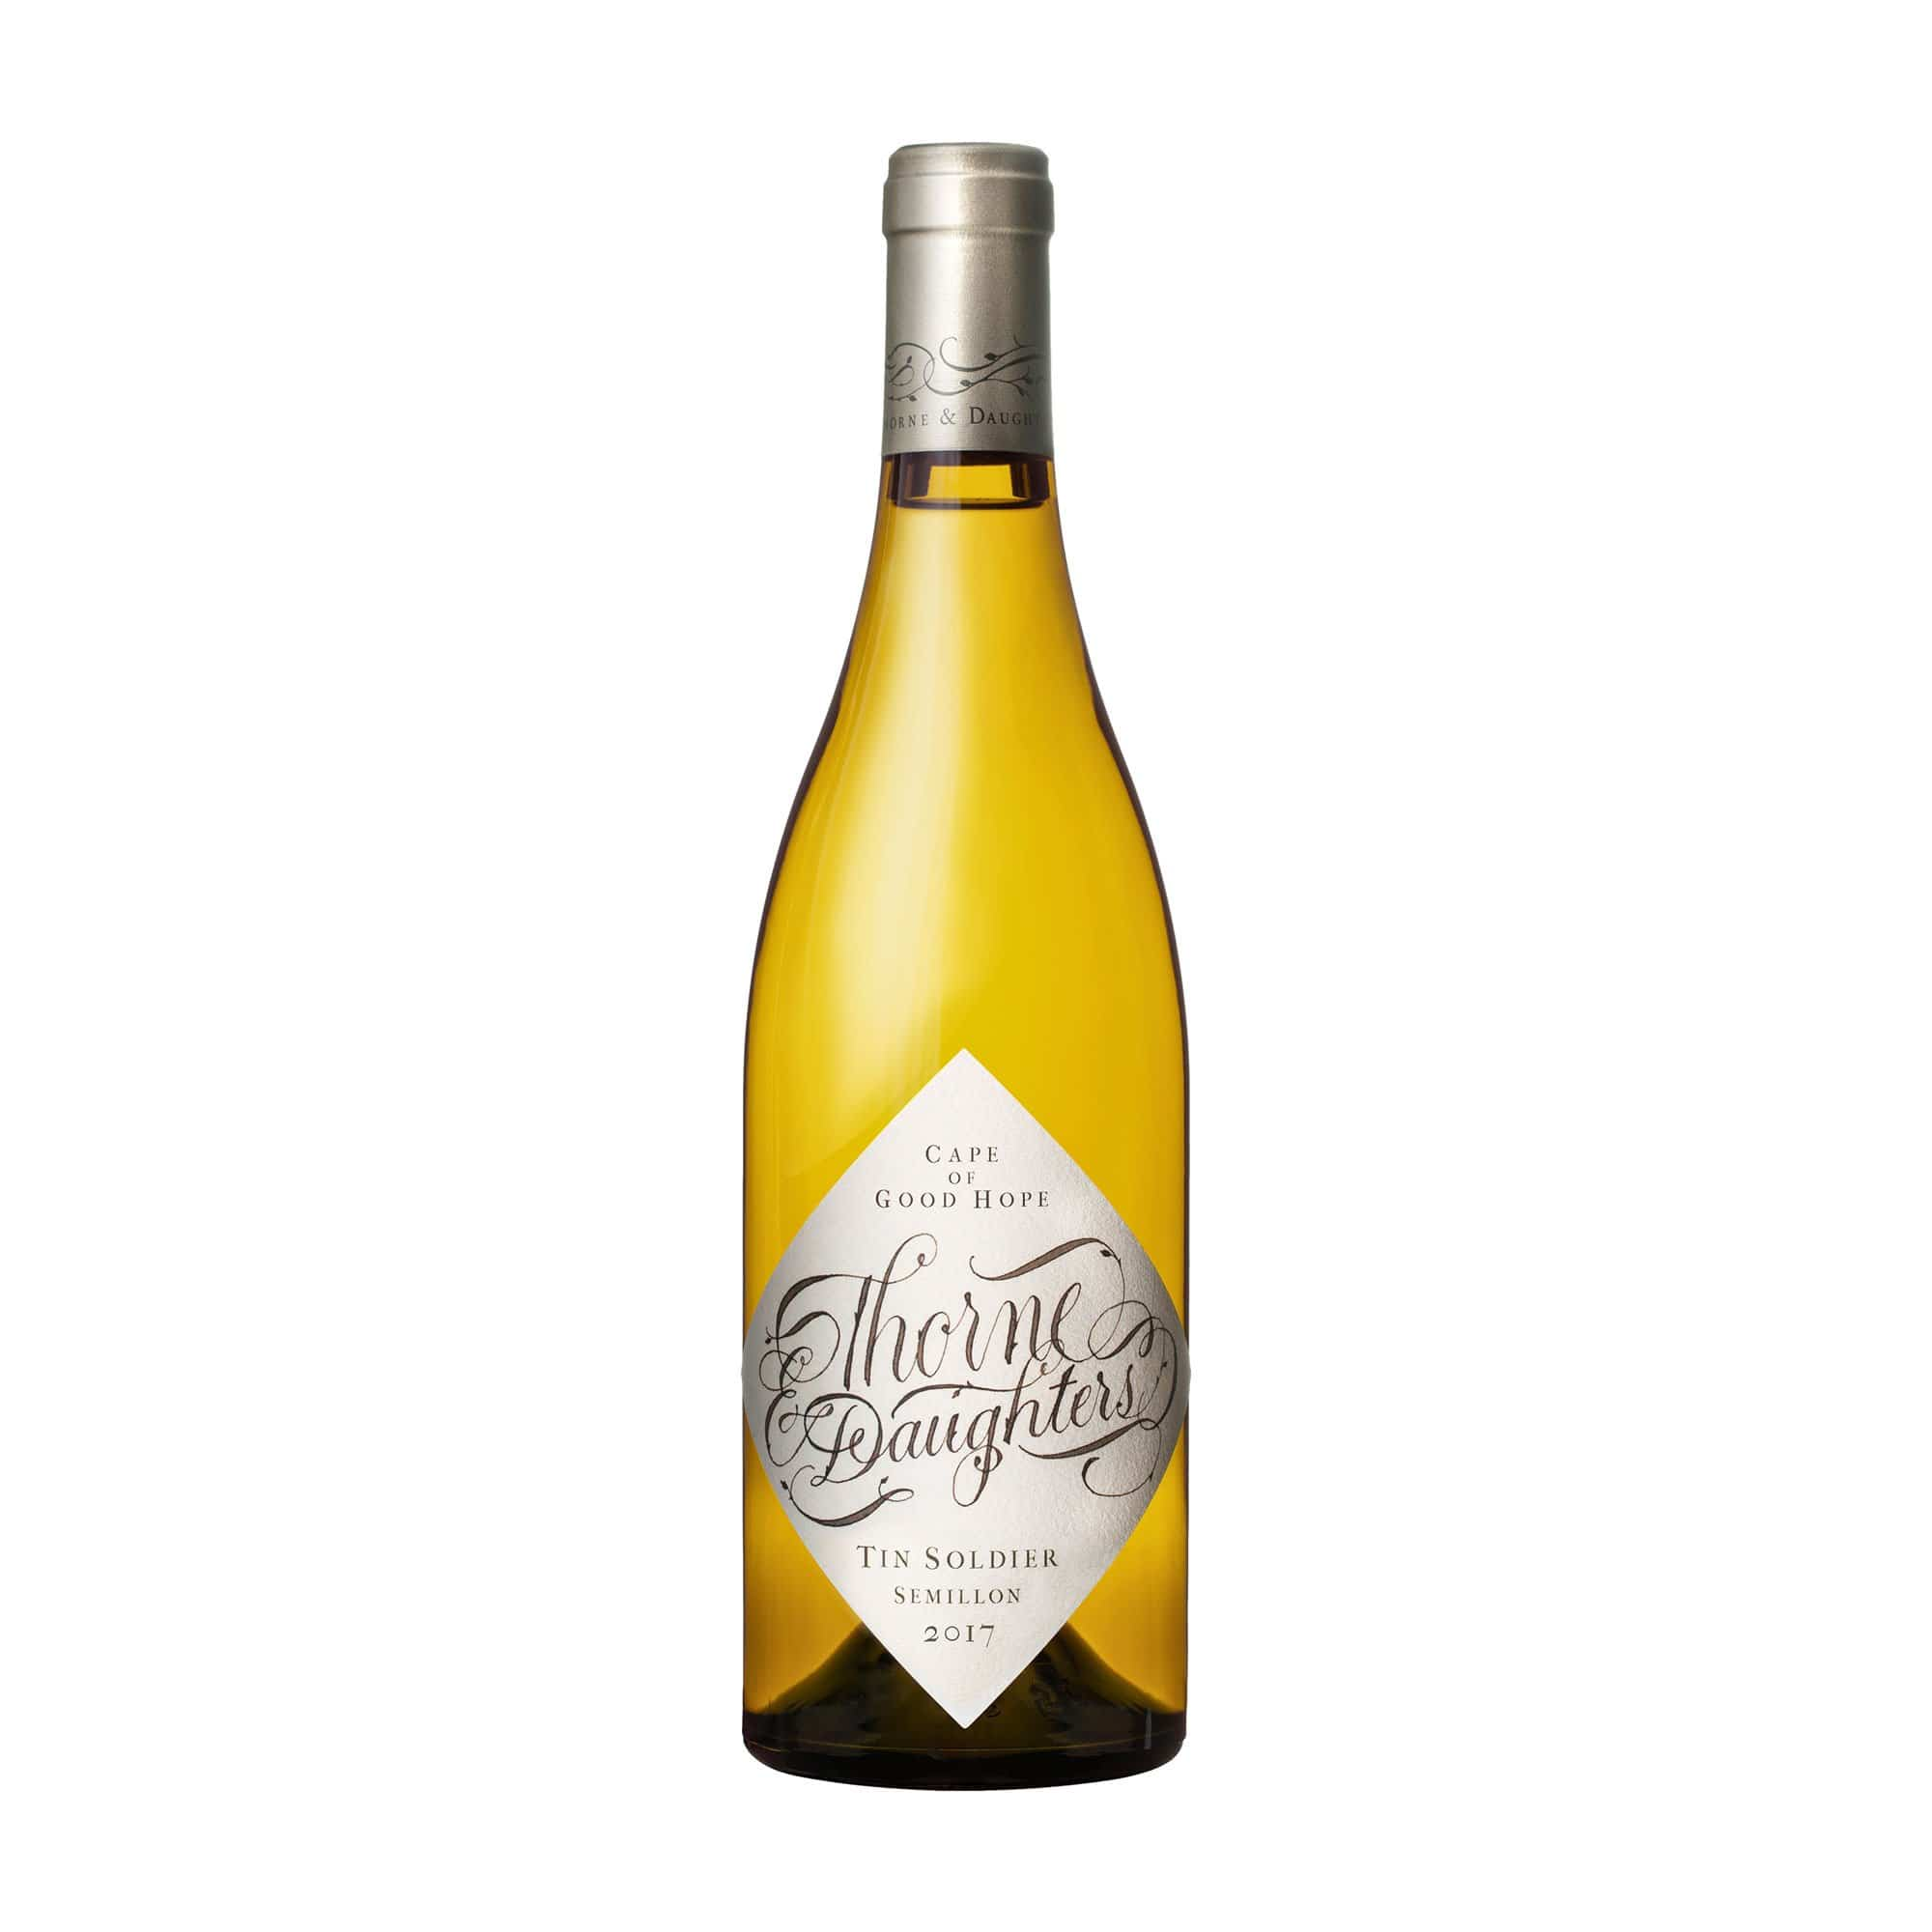 White Wine Thorne & Daughters Tin Soldier Semillon Gris Swartland 2019